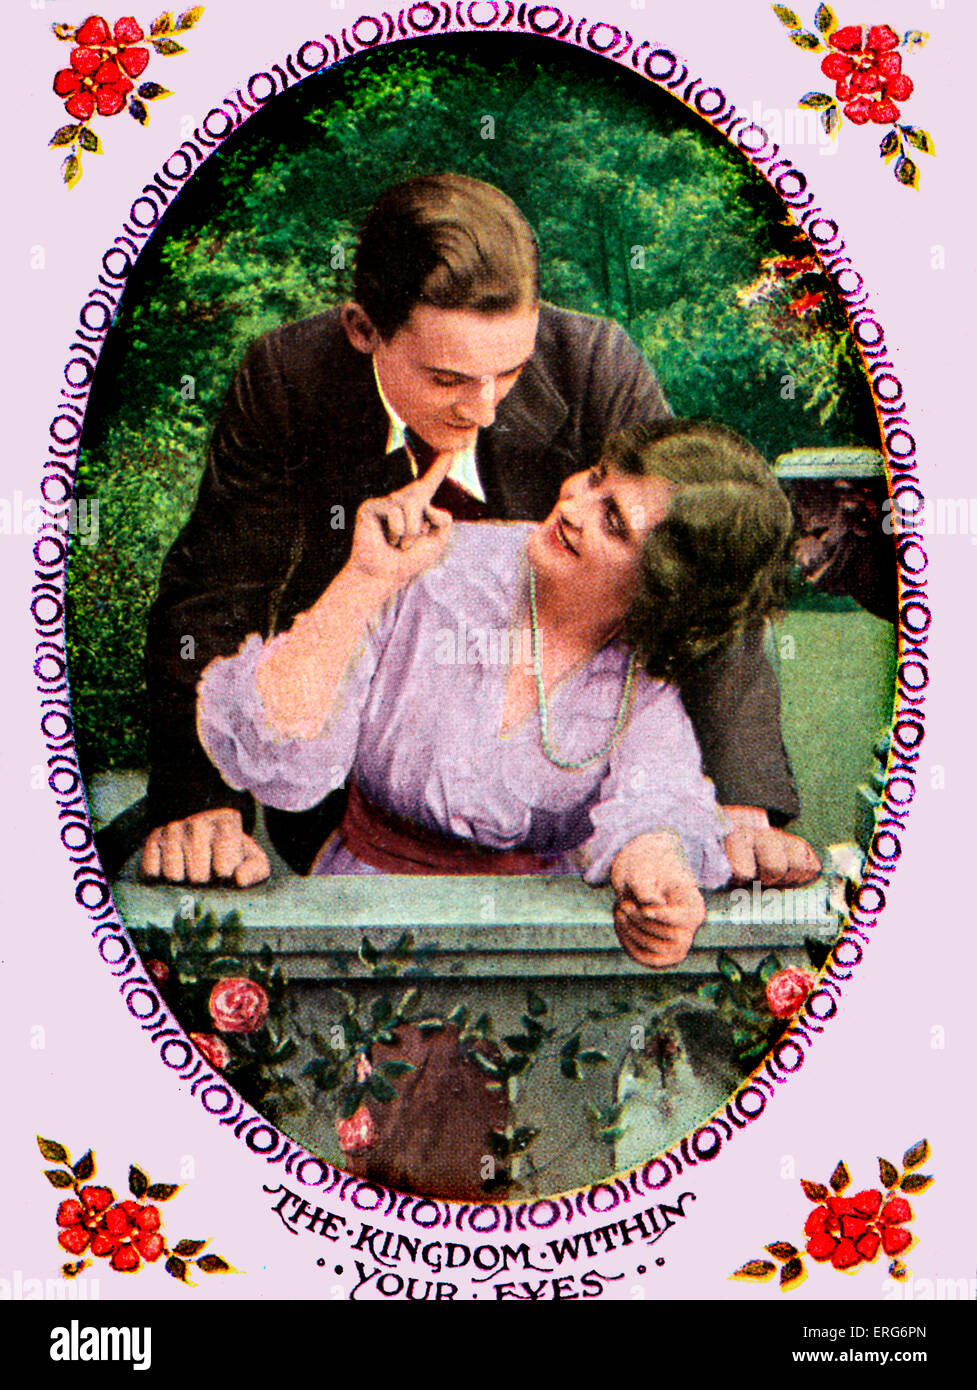 The Kingdom Within Your Eyes - Postcard featuring the song, (song by Horatio Nicholls, c. 1919).   Lyrics (reproduced - Stock Image